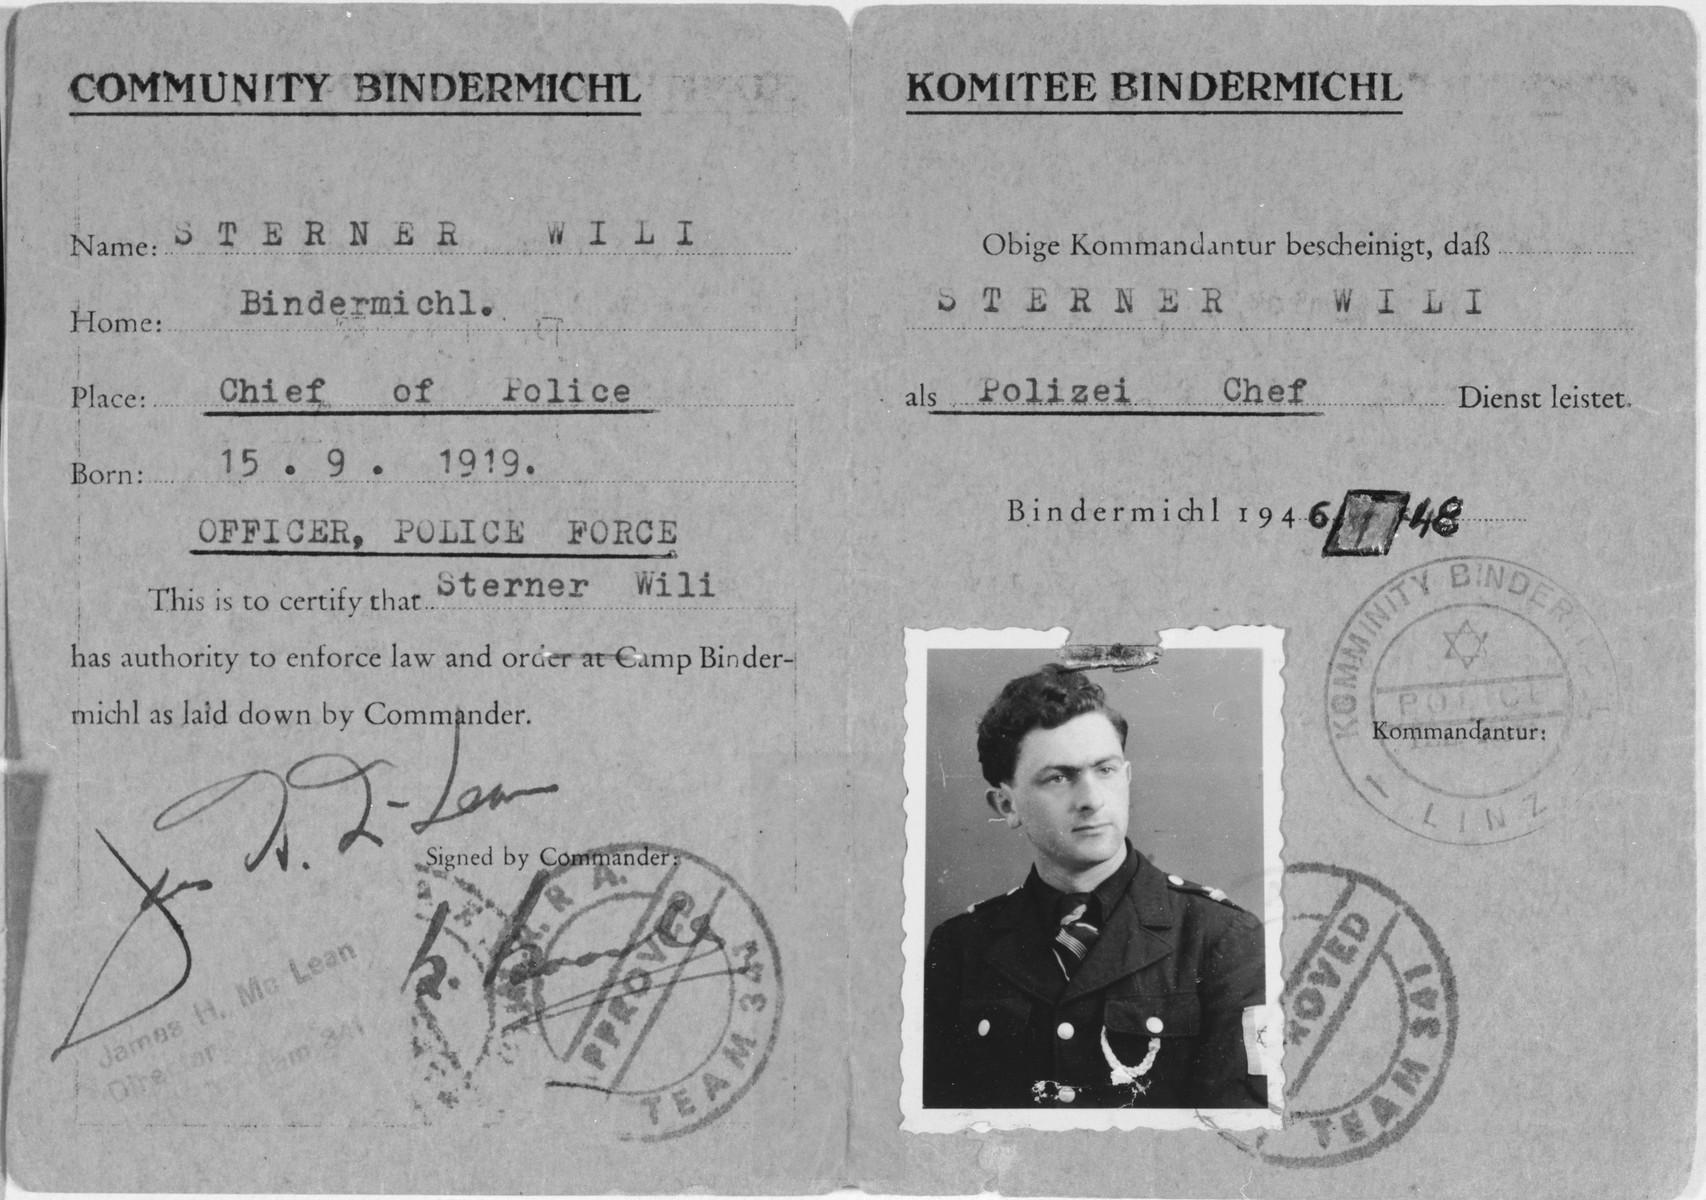 Police identification card issued by the Bindermichl displaced persons camp committee to police chief Willie Sterner, certifying his authority to enforce the law within the camp.